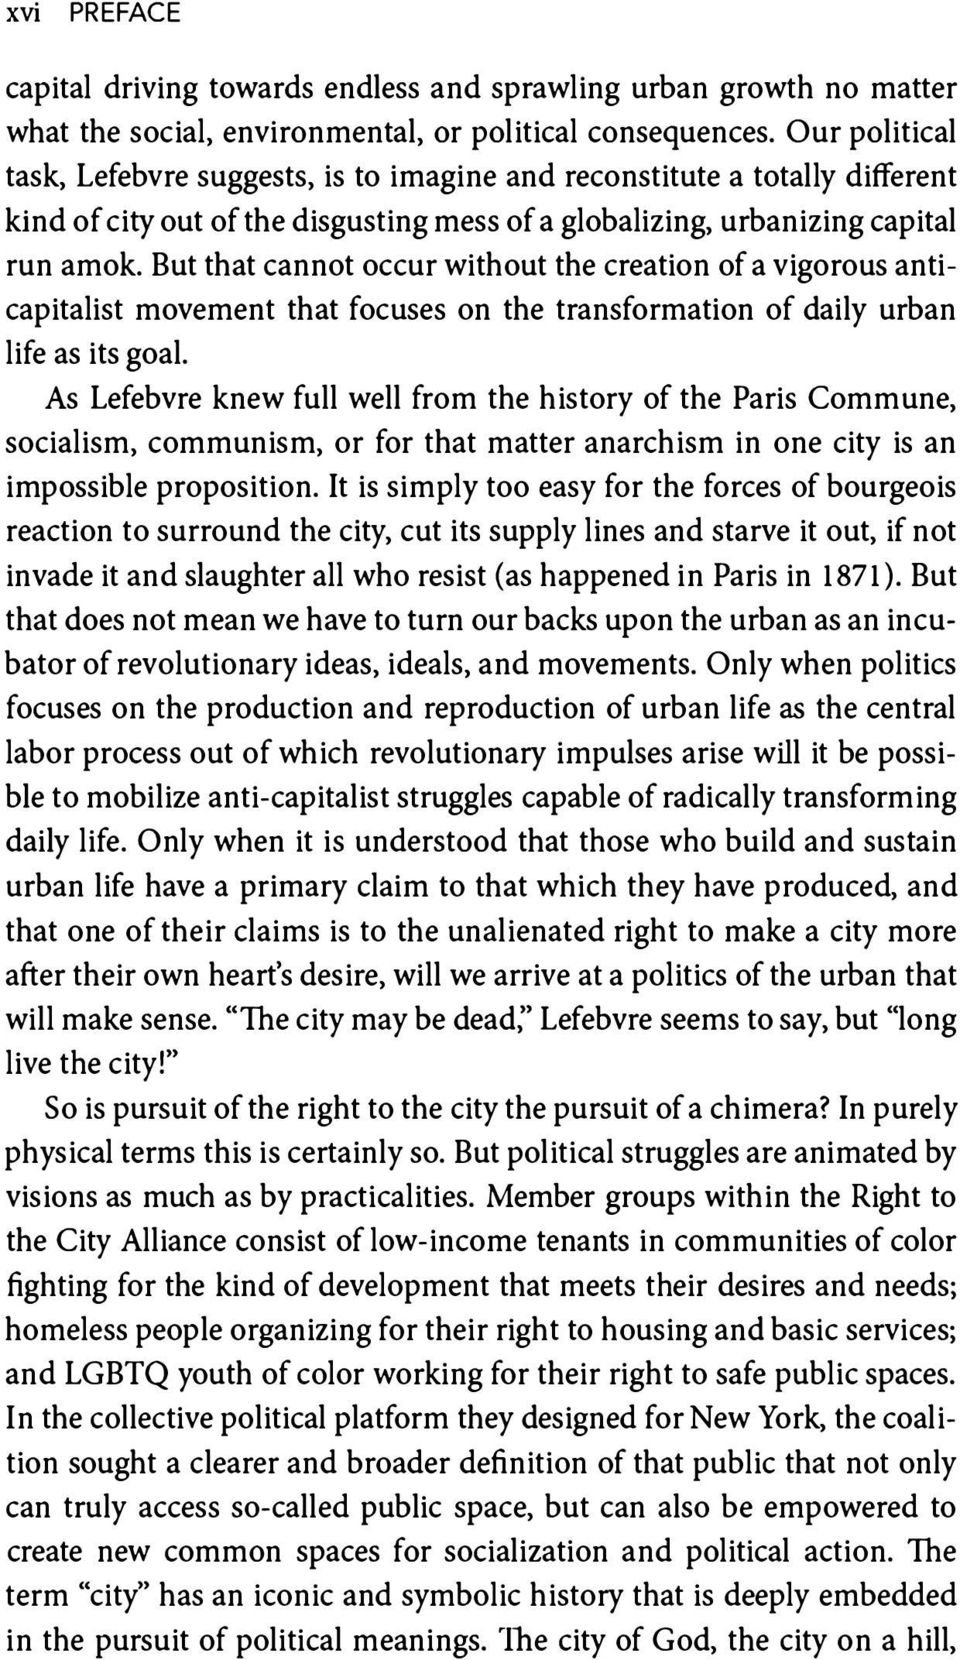 But that cannot occur without the creation of a vigorous anticapitalist movement that focuses on the transformation of daily urban life as its goal.